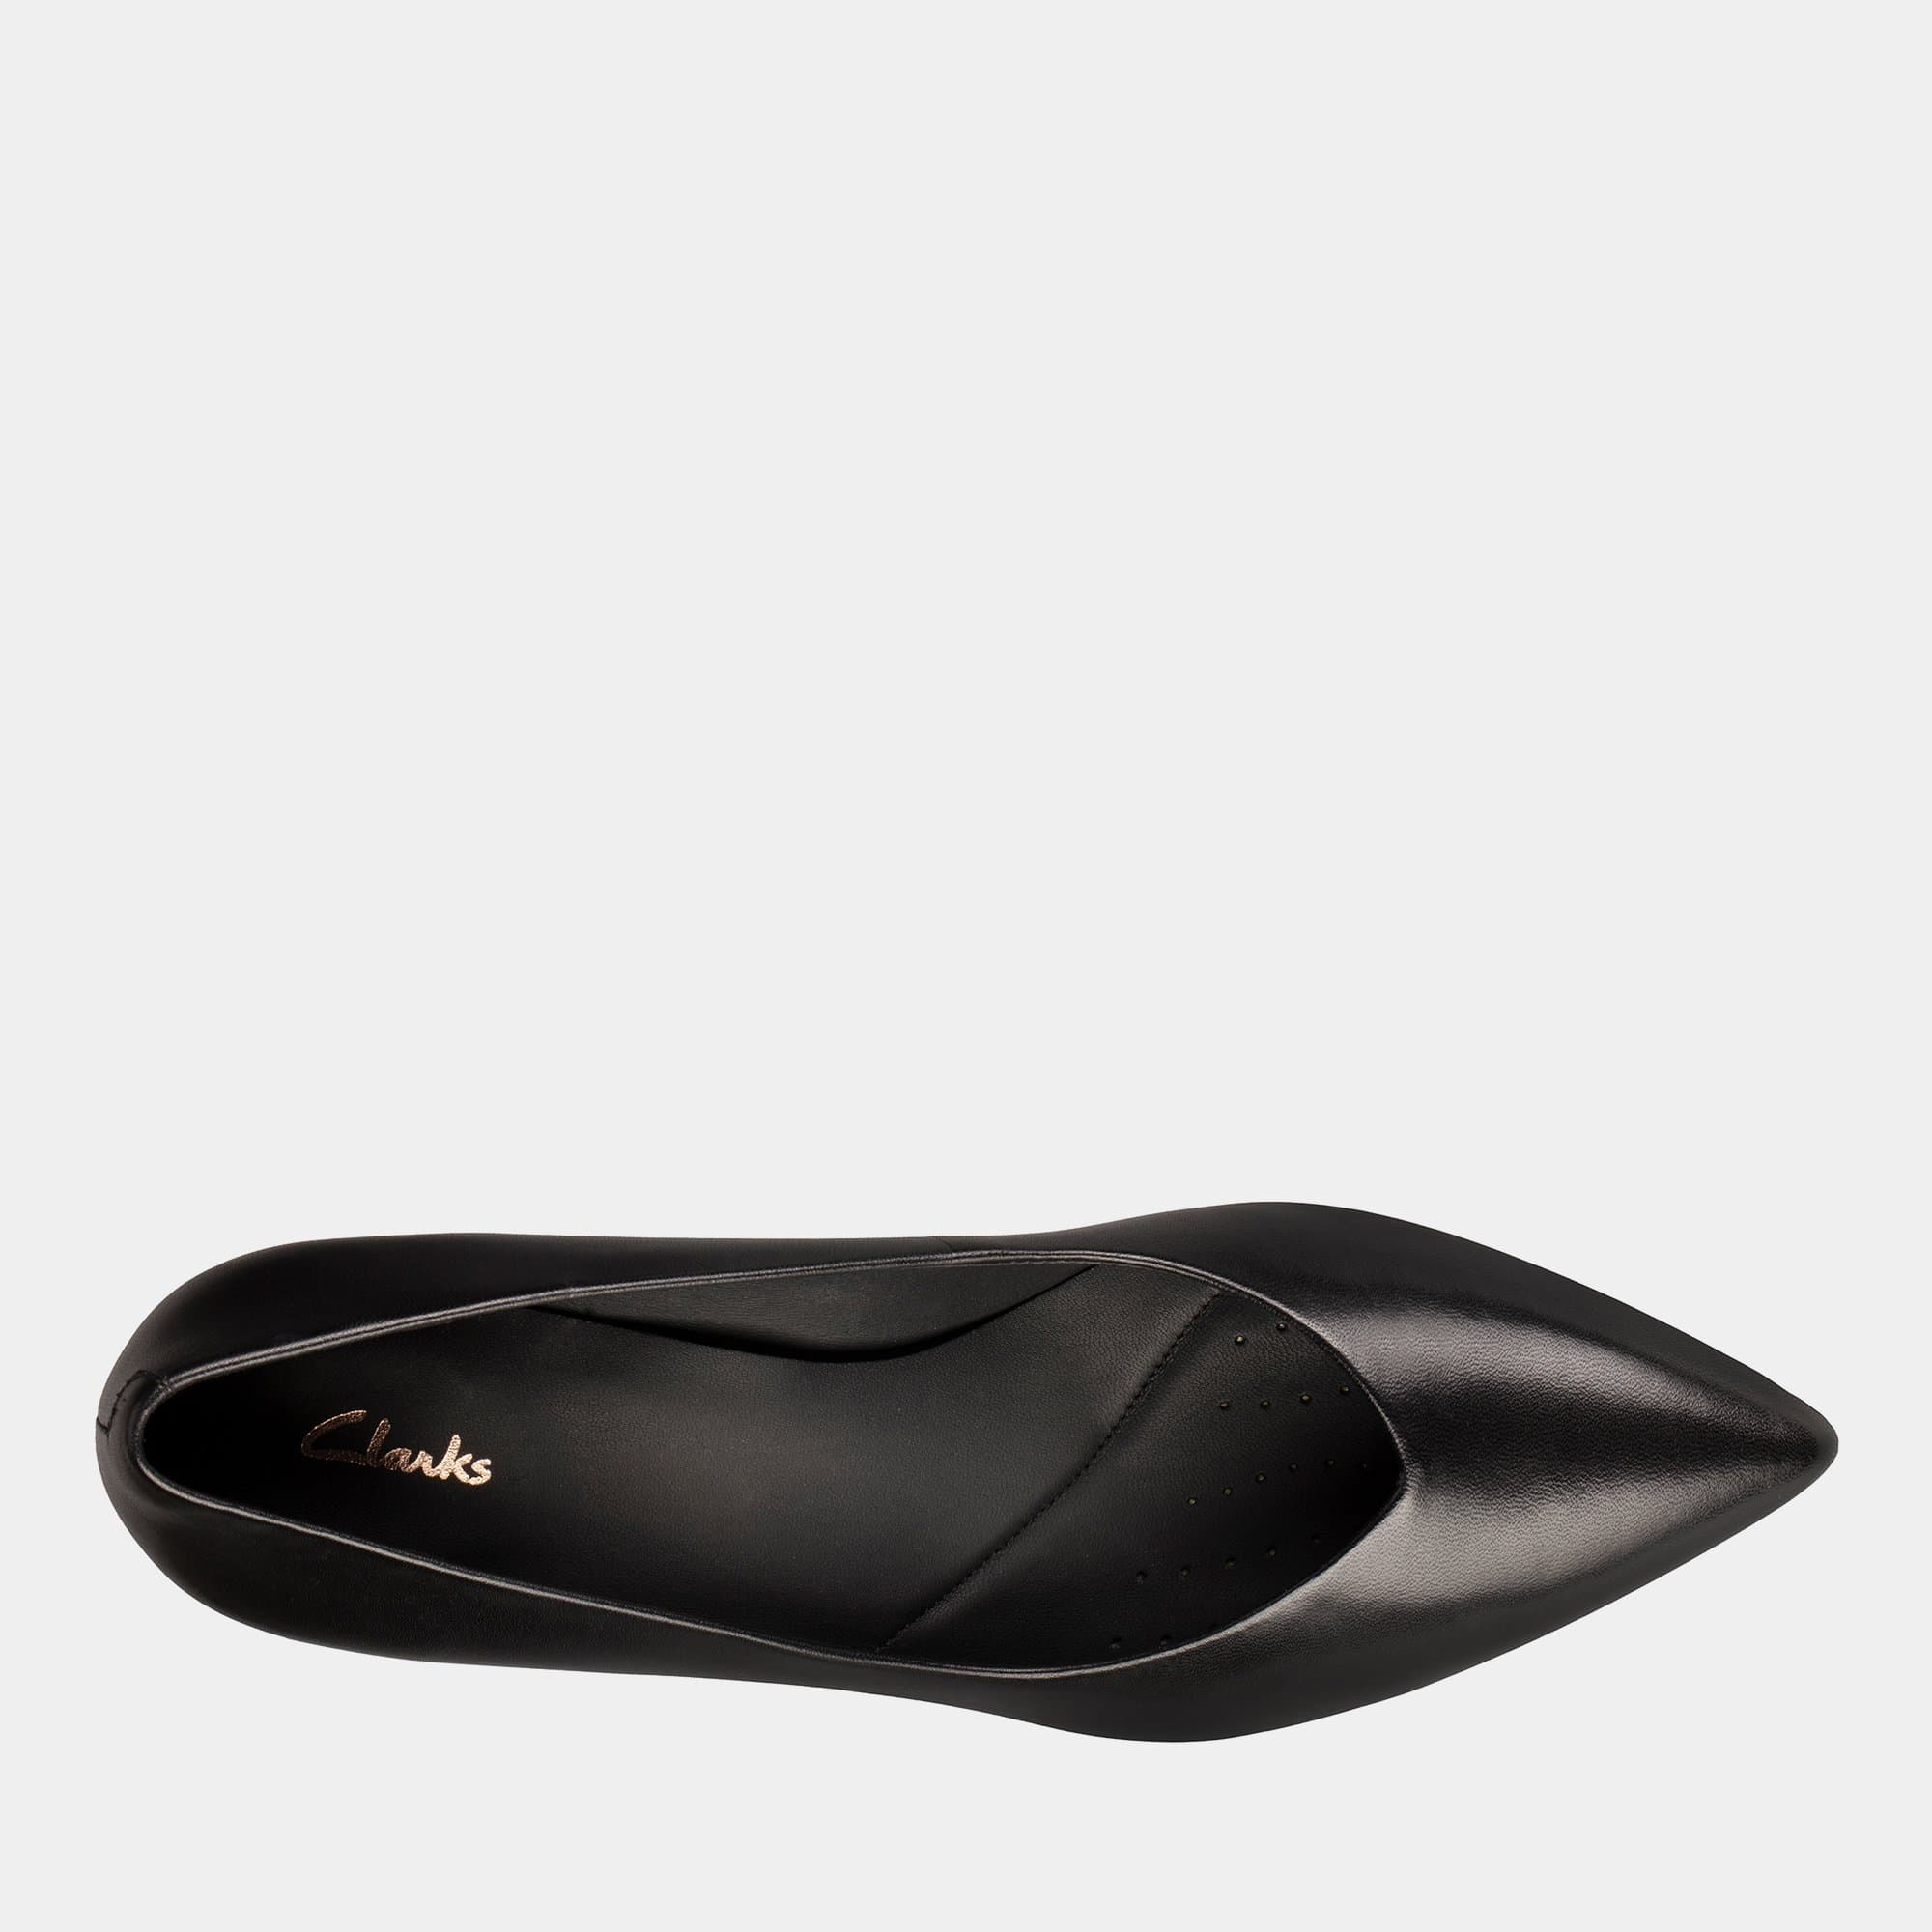 Clarks Footwear Laina55 Court2 26151380 Black